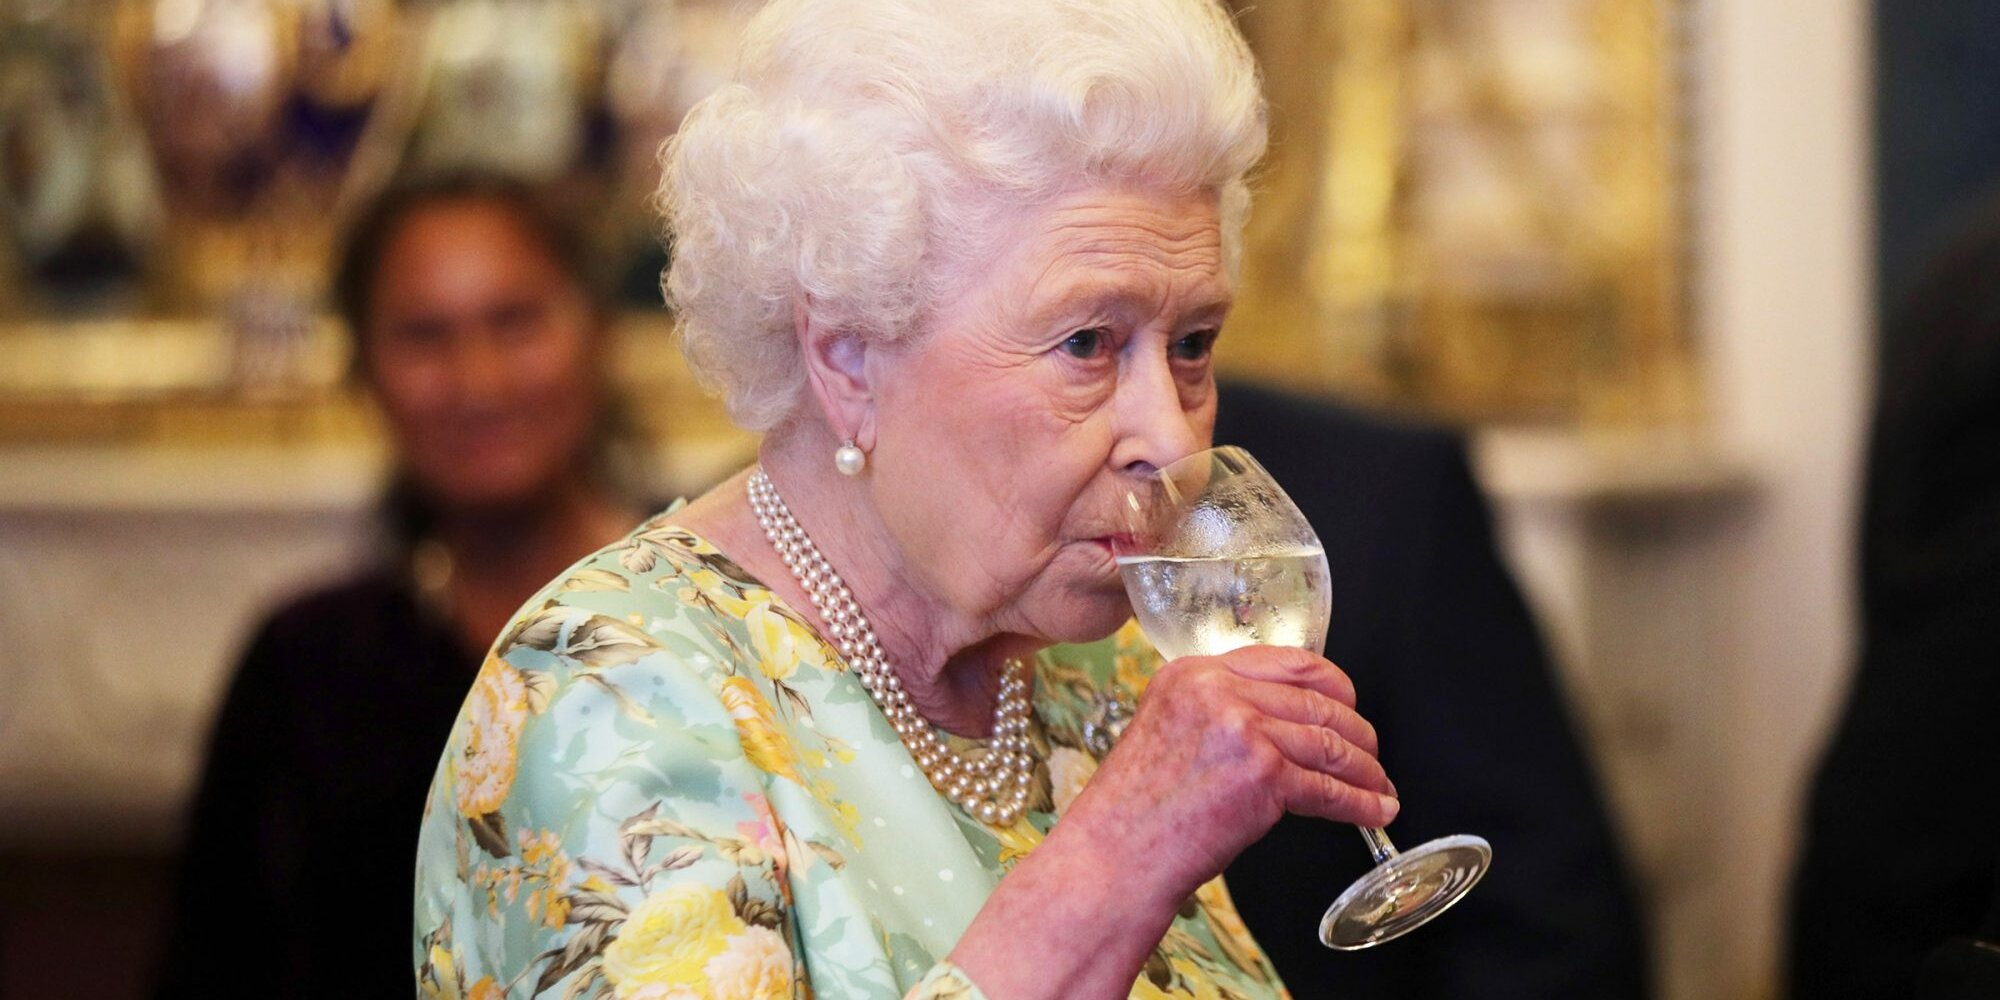 Queen Elizabeth Just Launched Her Own Beer!.jpg